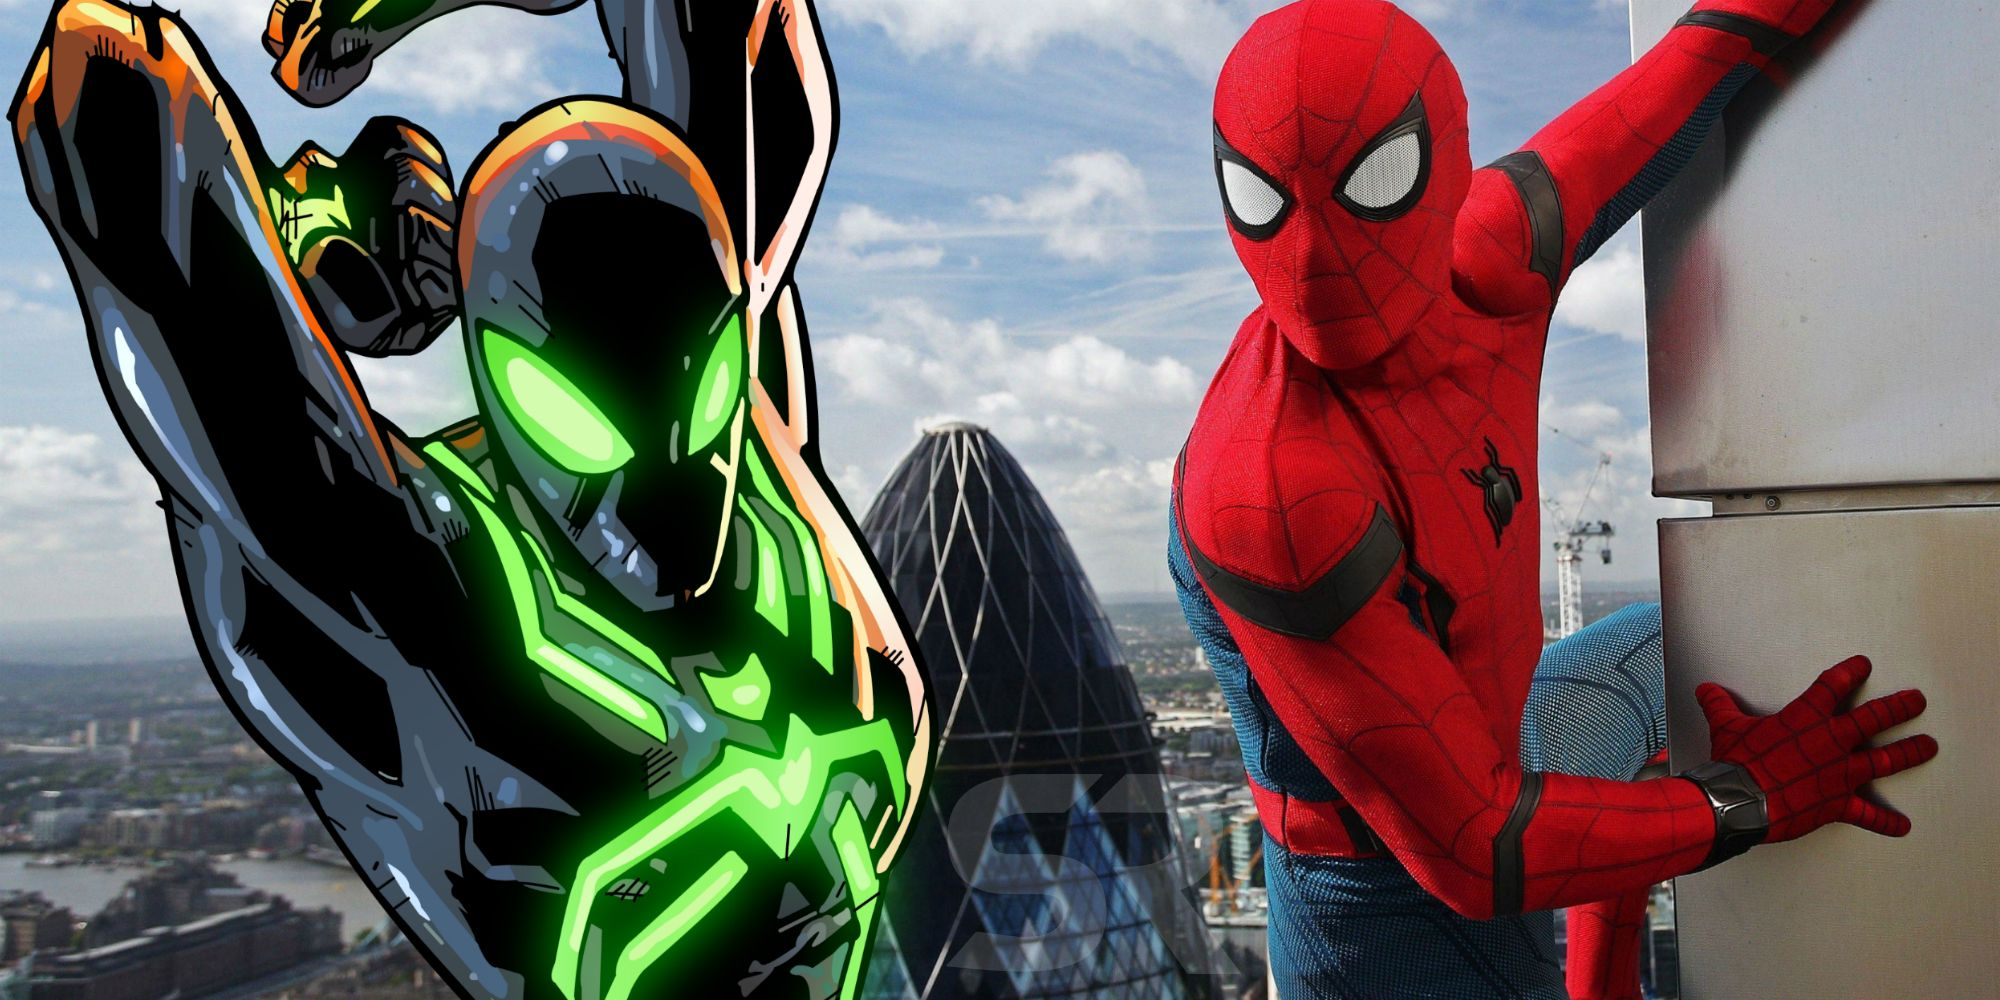 spider-man: far from home set photo may reveal stealth suit